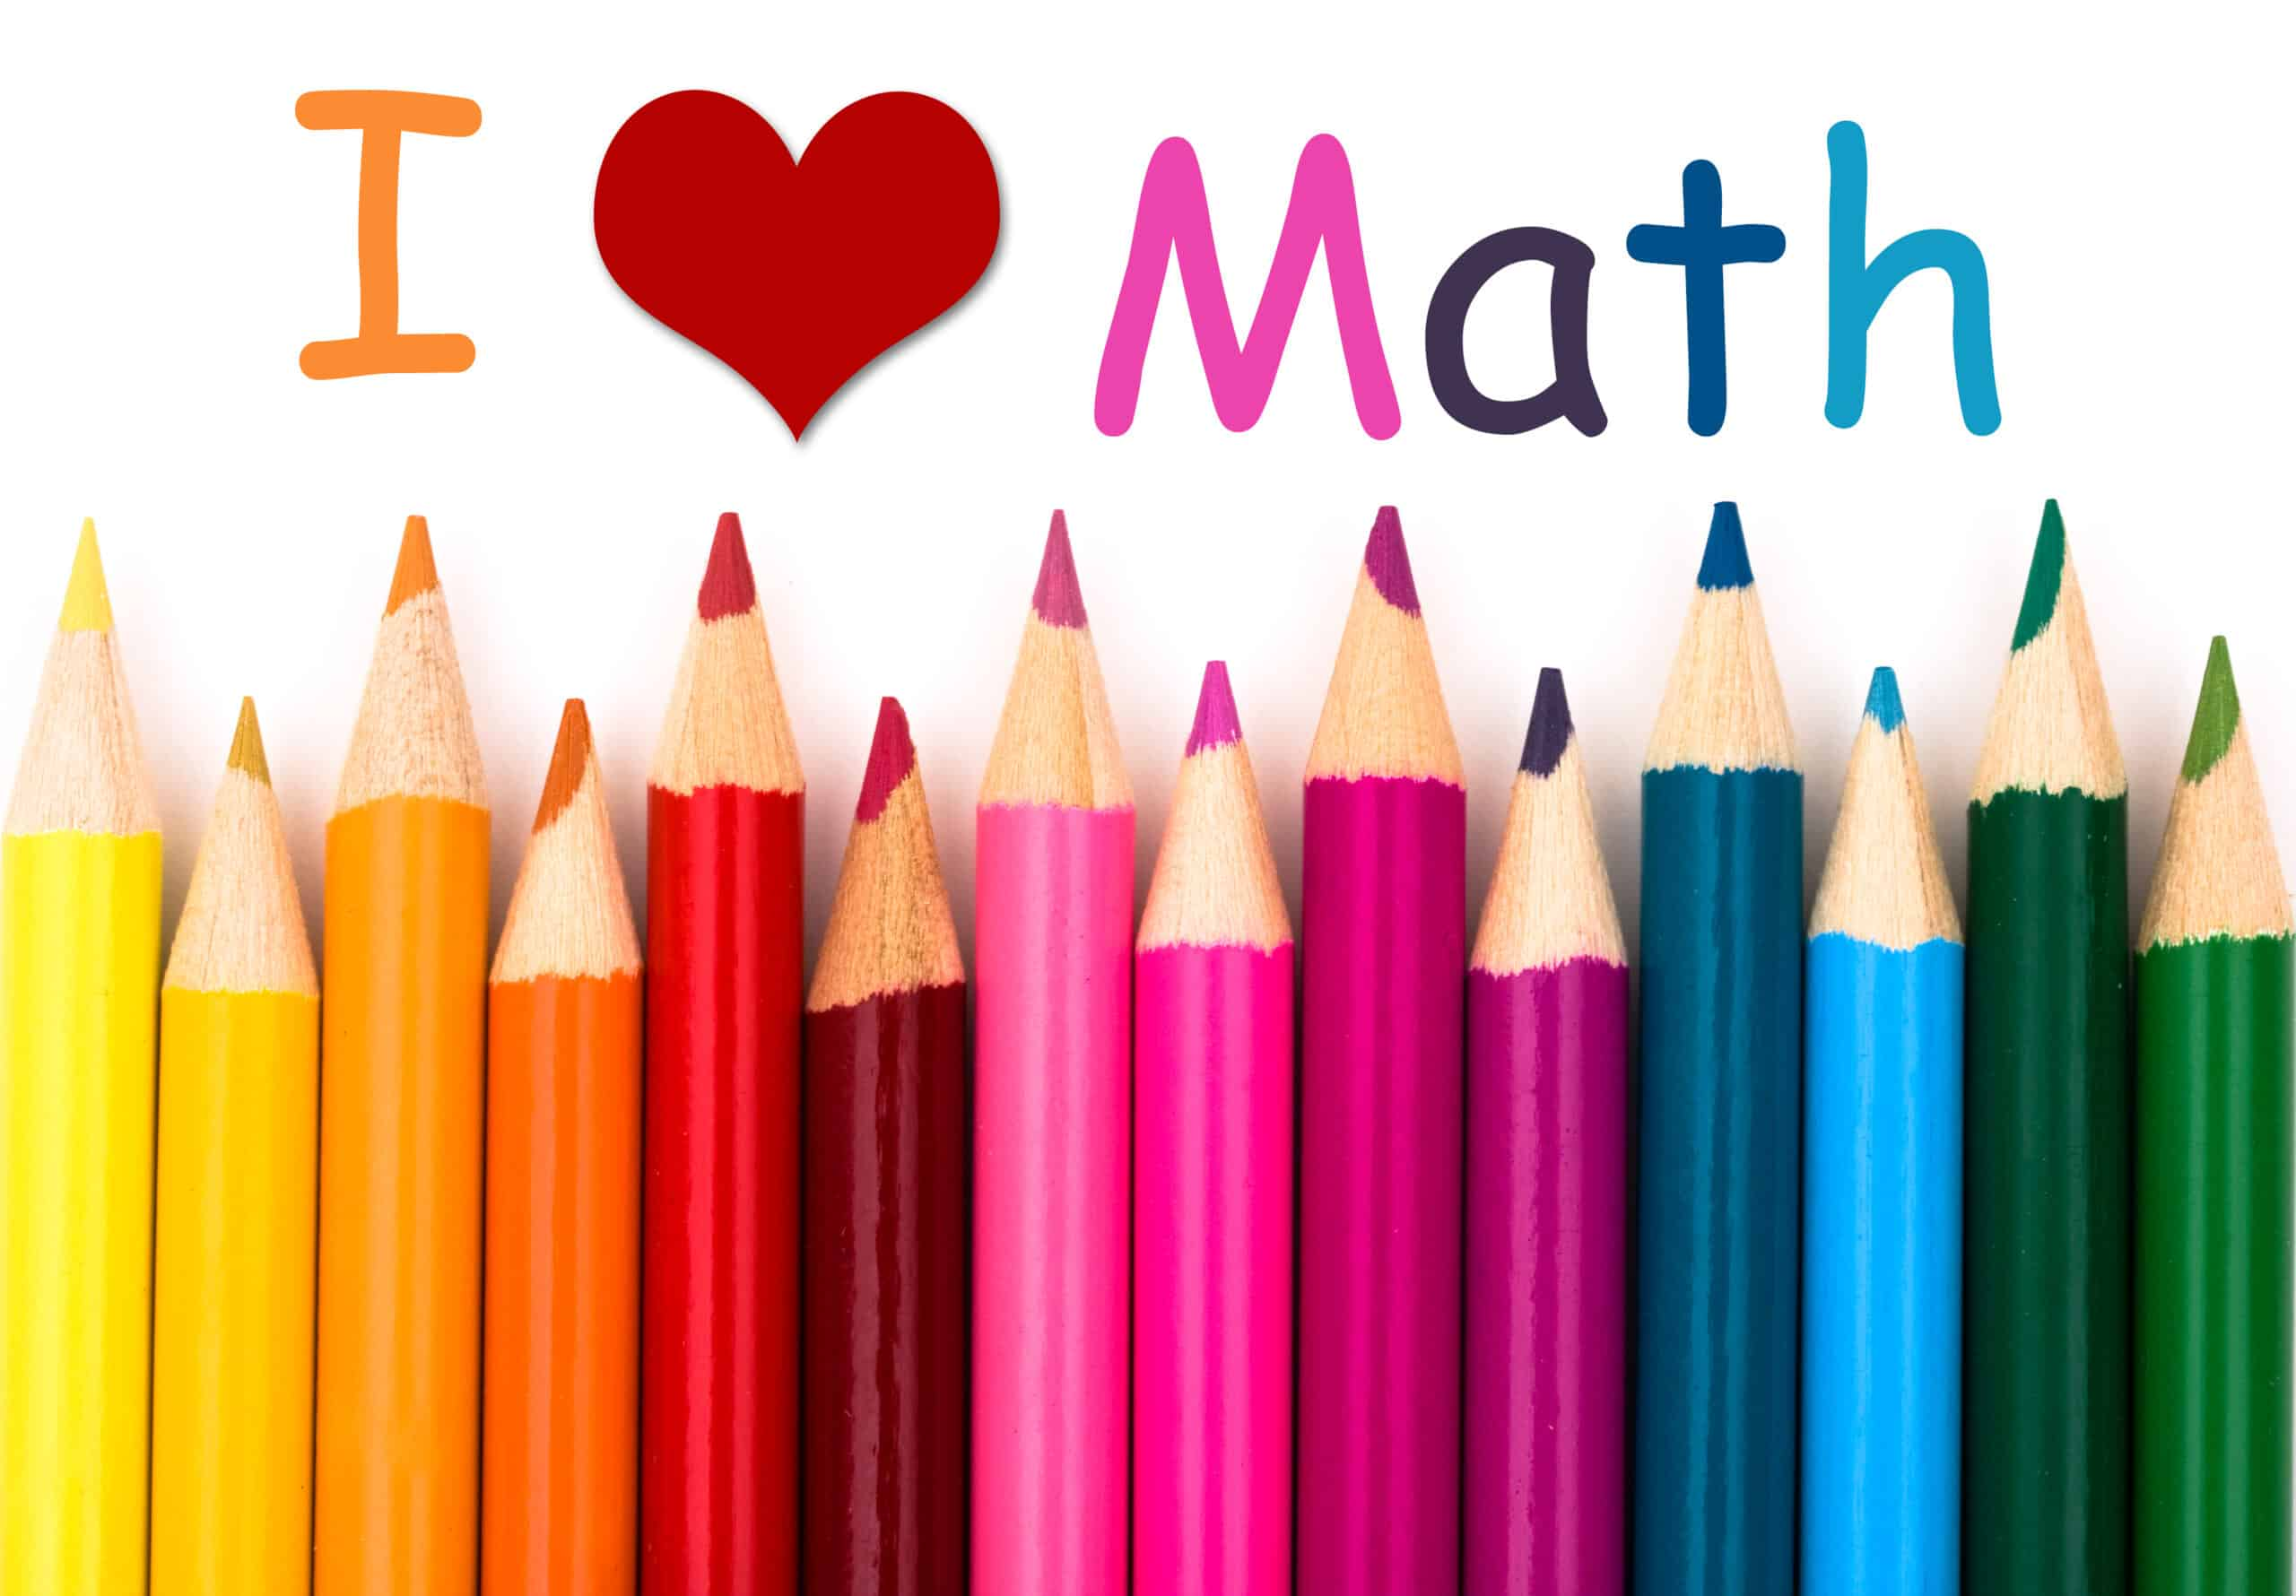 I love math colored pencils mental math